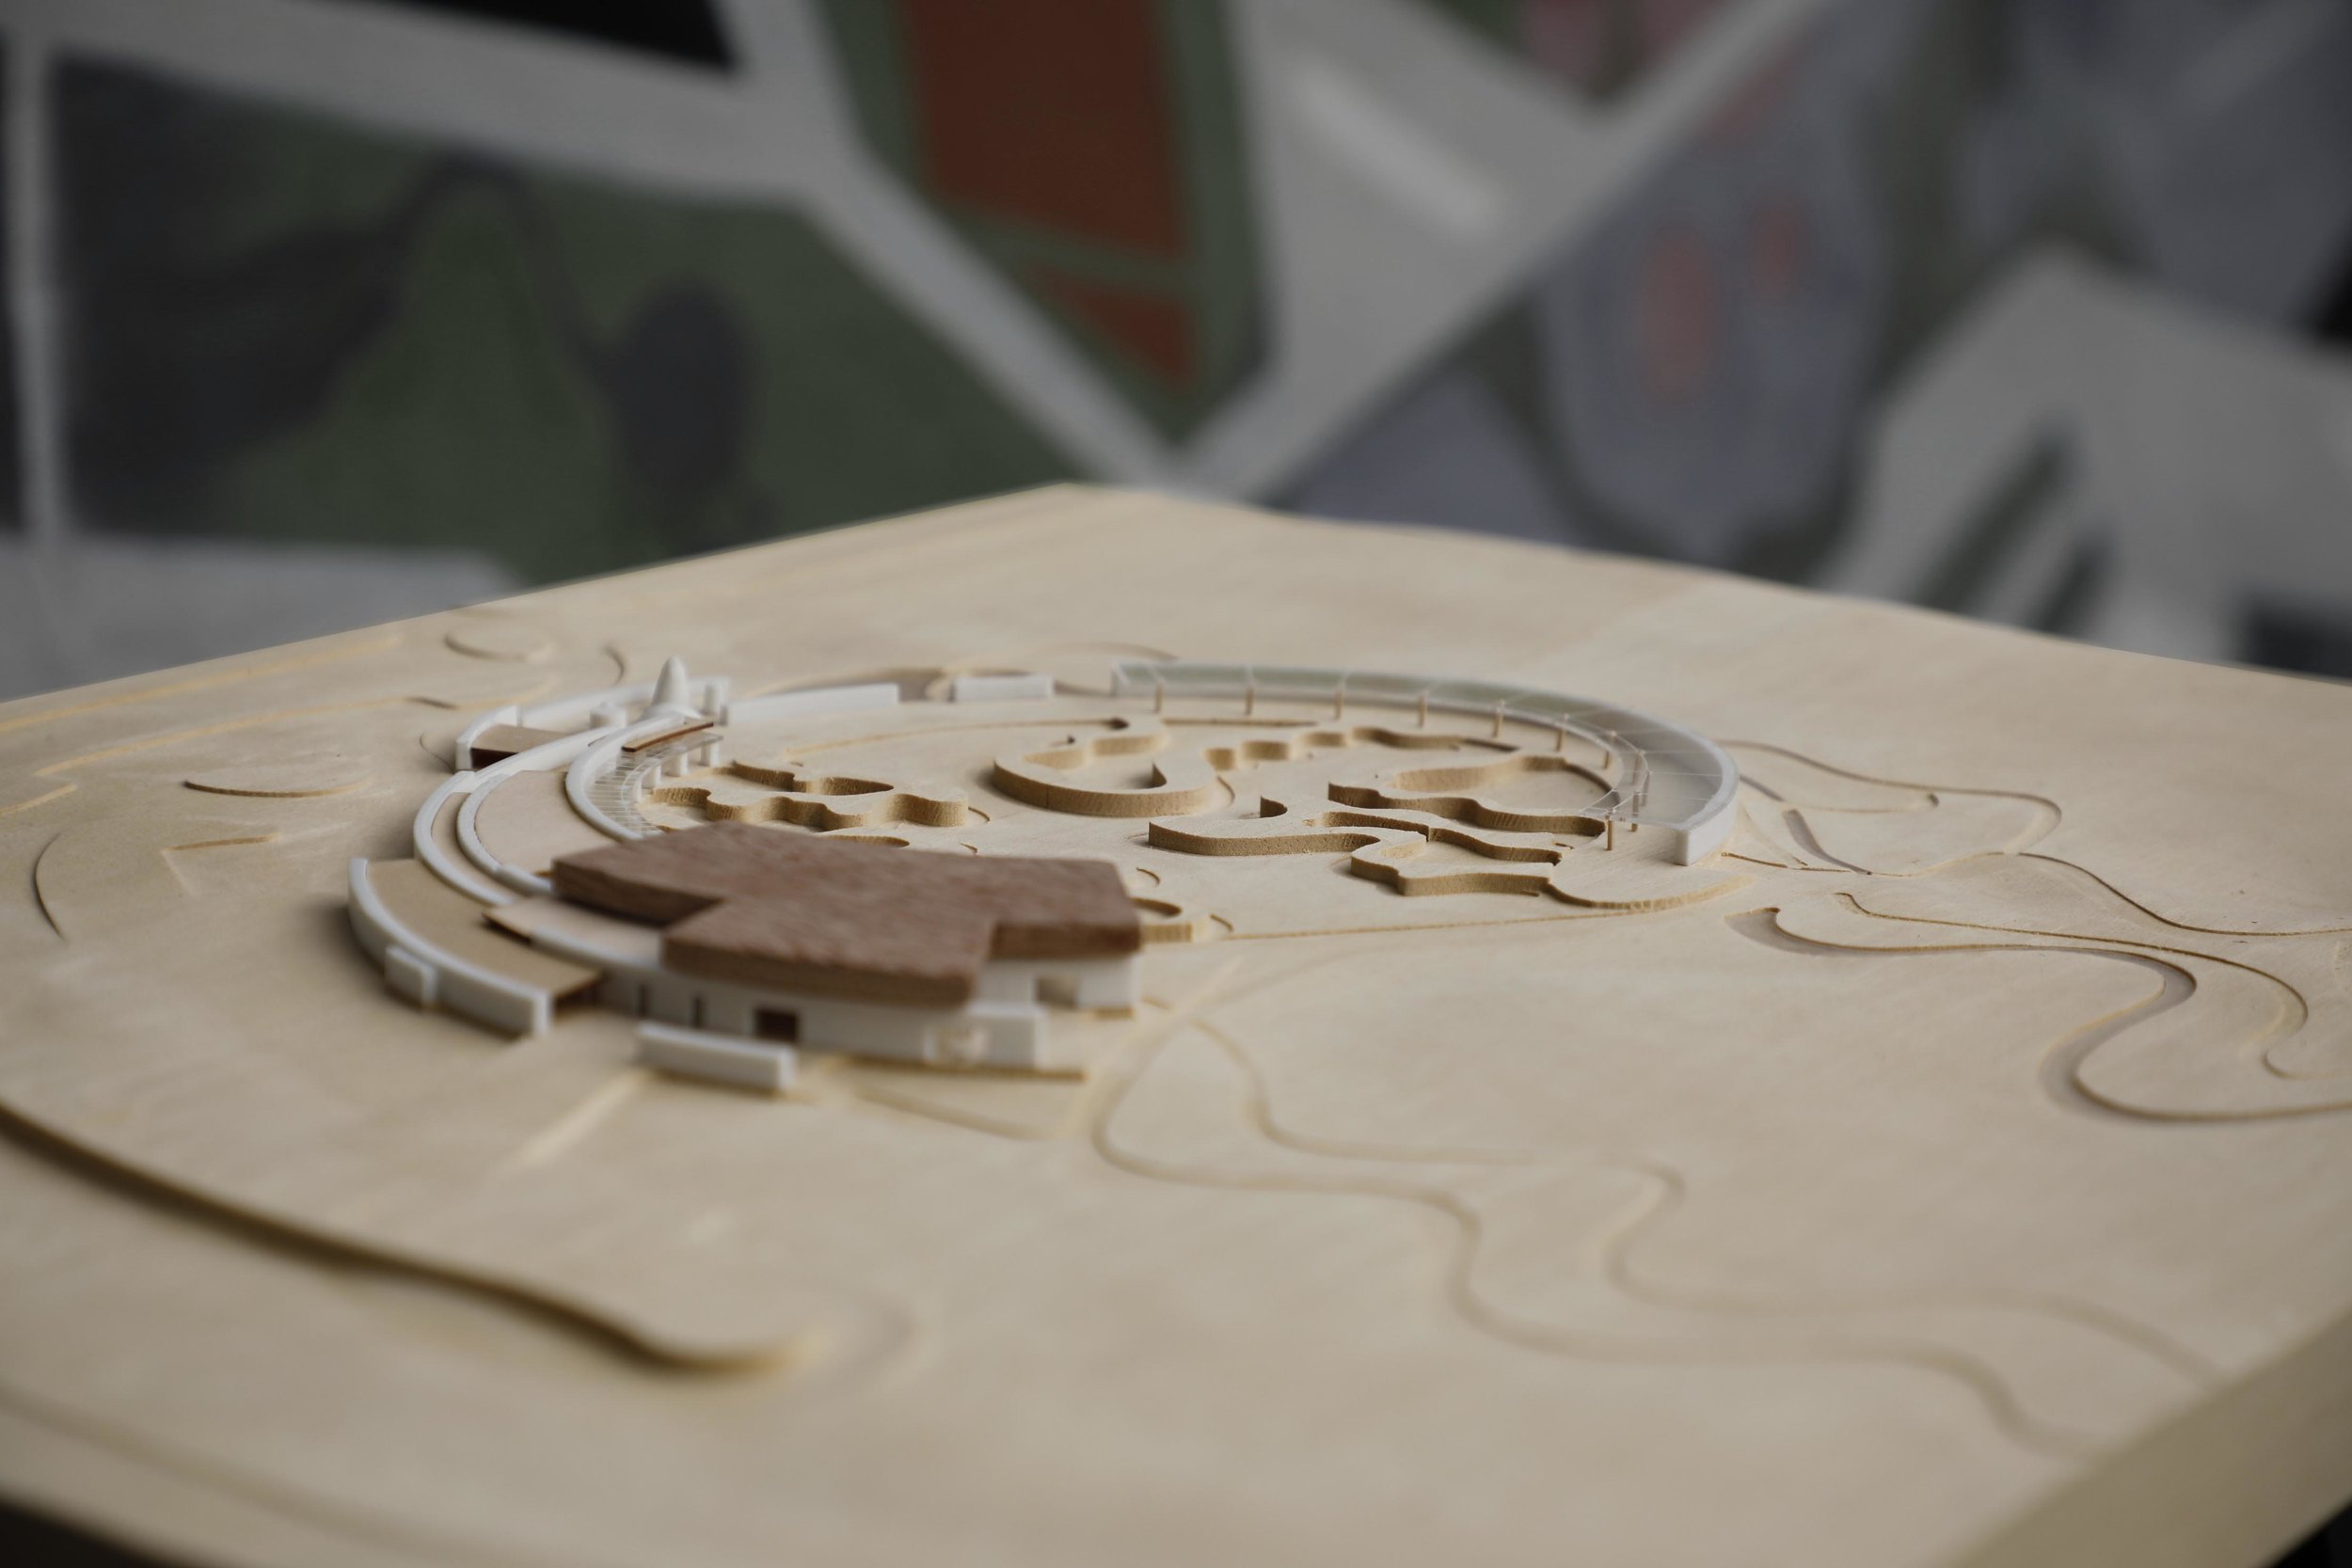 make_models_architecture_TZG_cnc_solid_timber_make_models_topography_laser_cutting_3.jpg